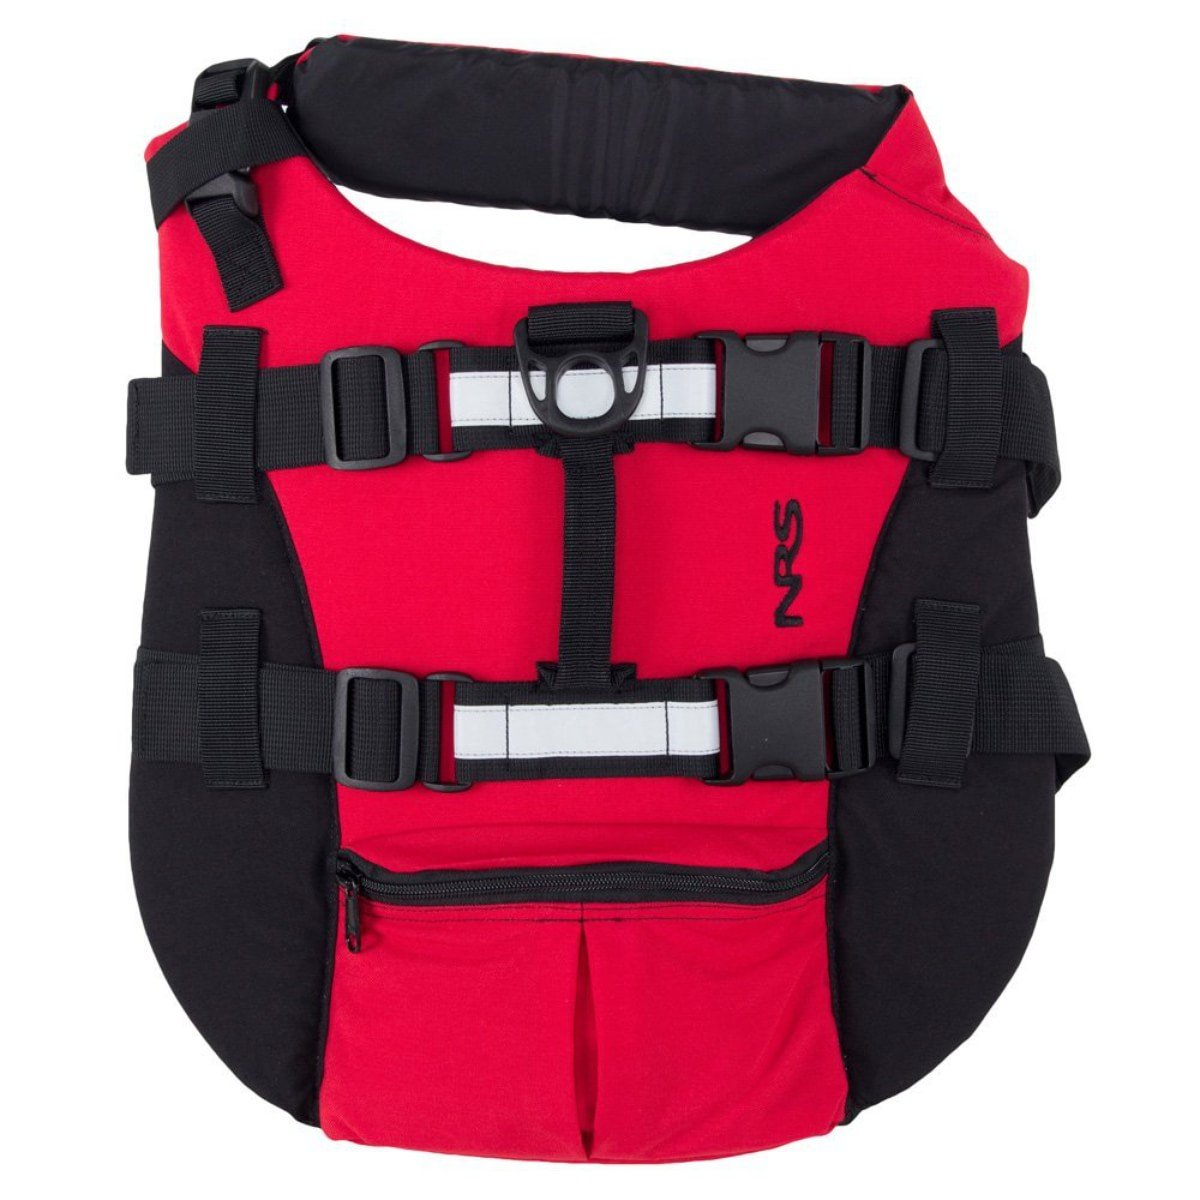 NRS CFD - Dog Life Jacket Red Medium by NRS